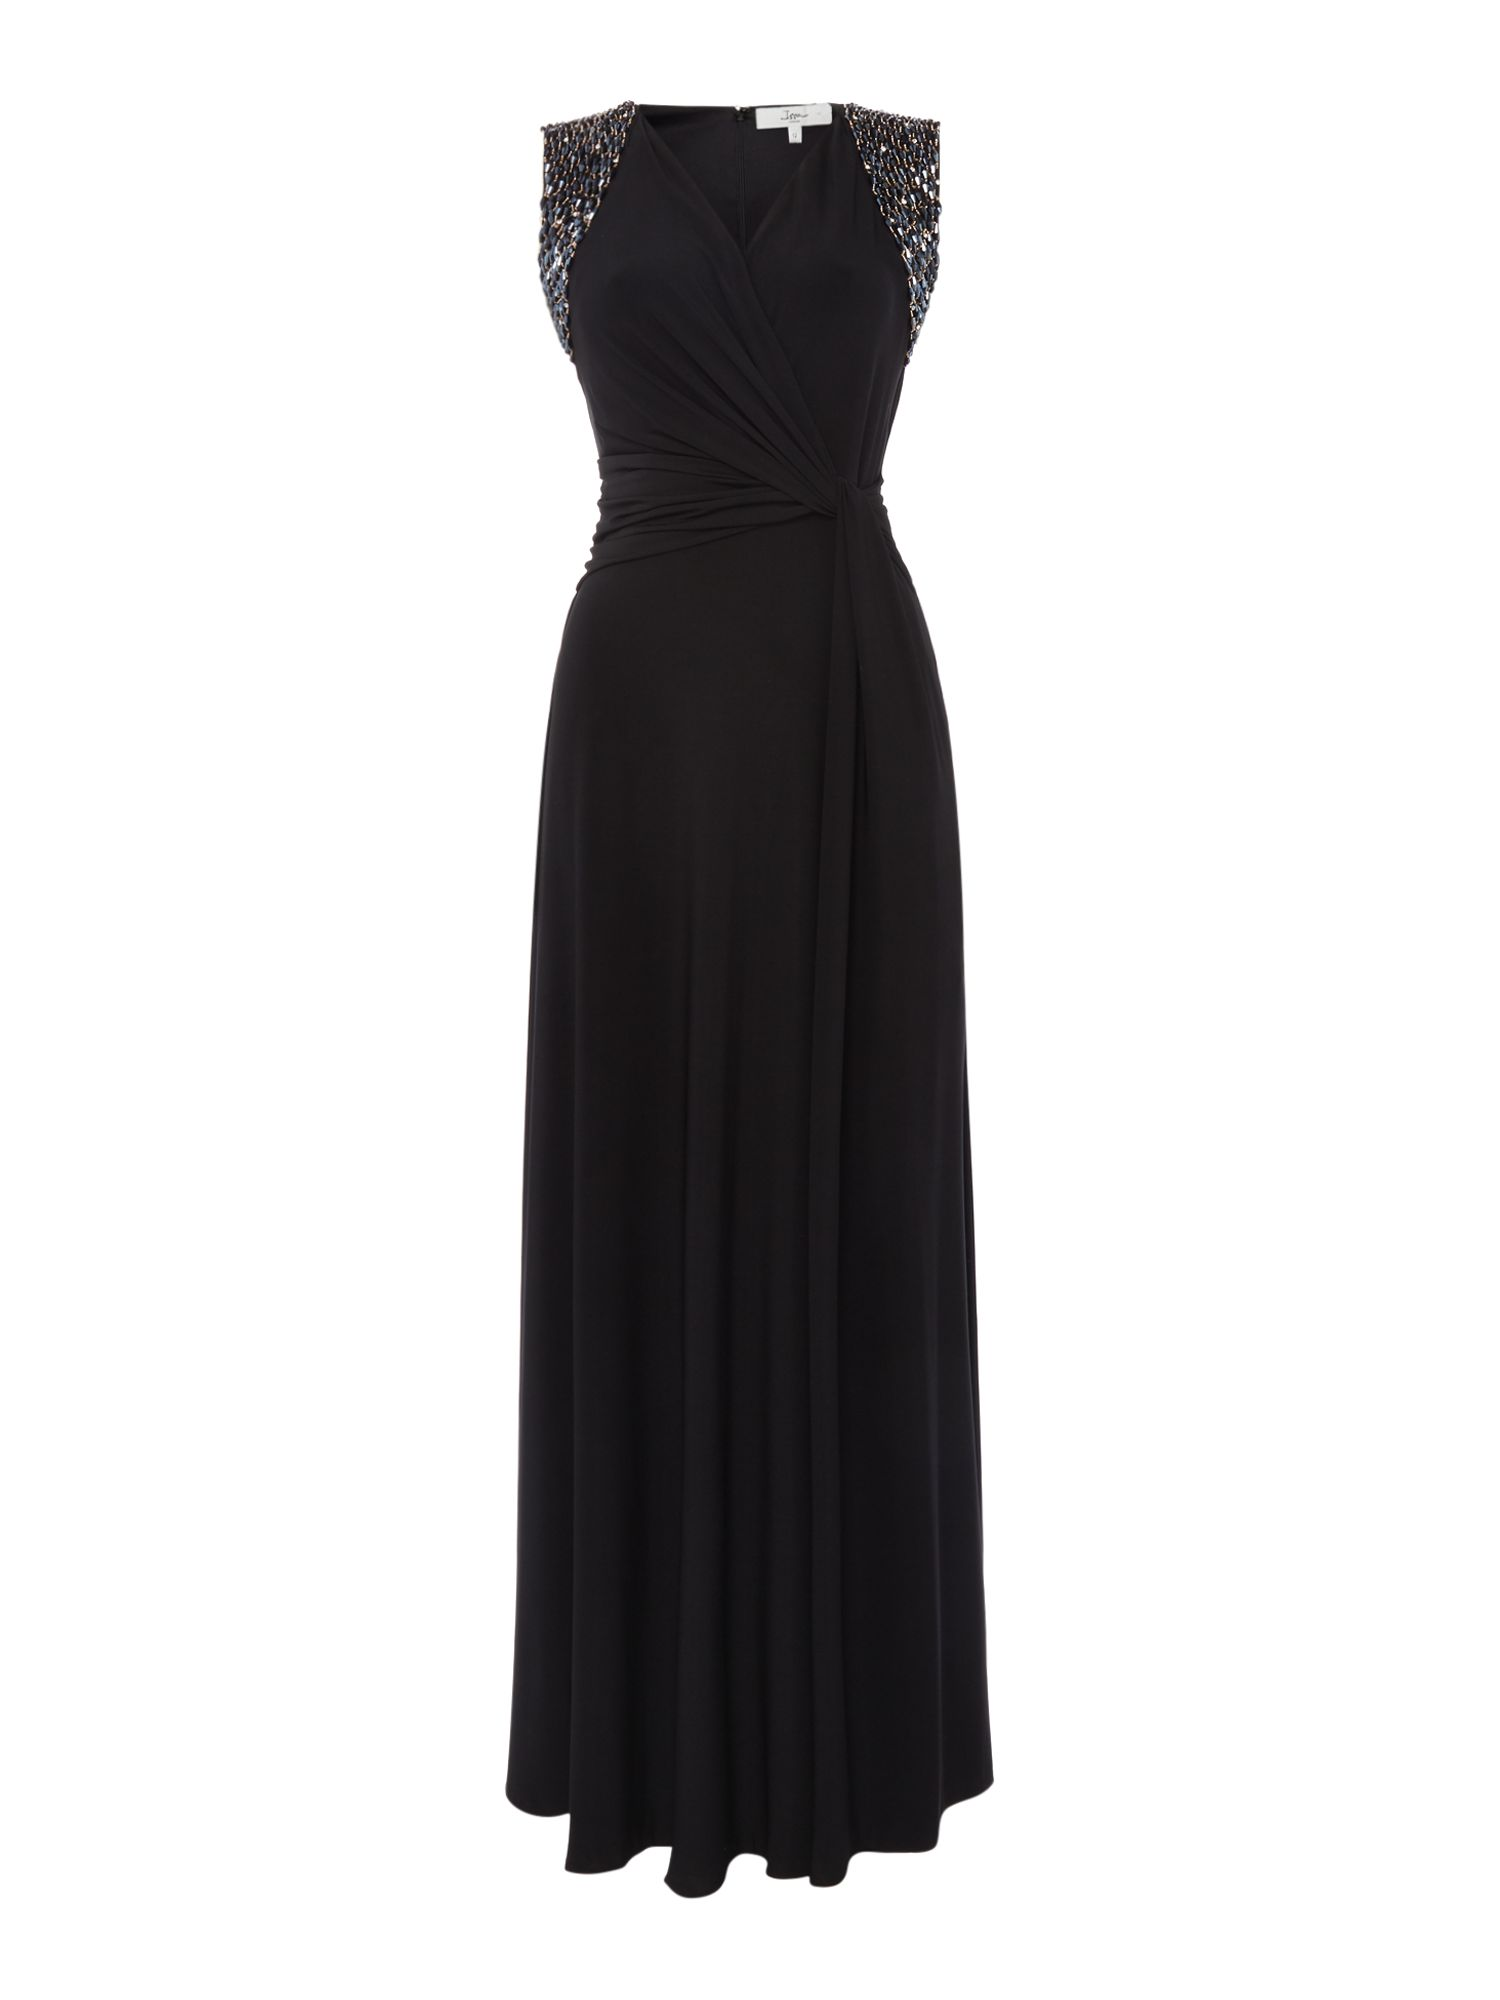 ISSA Audrey Embellished Sleeveless Maxi Dress, Black